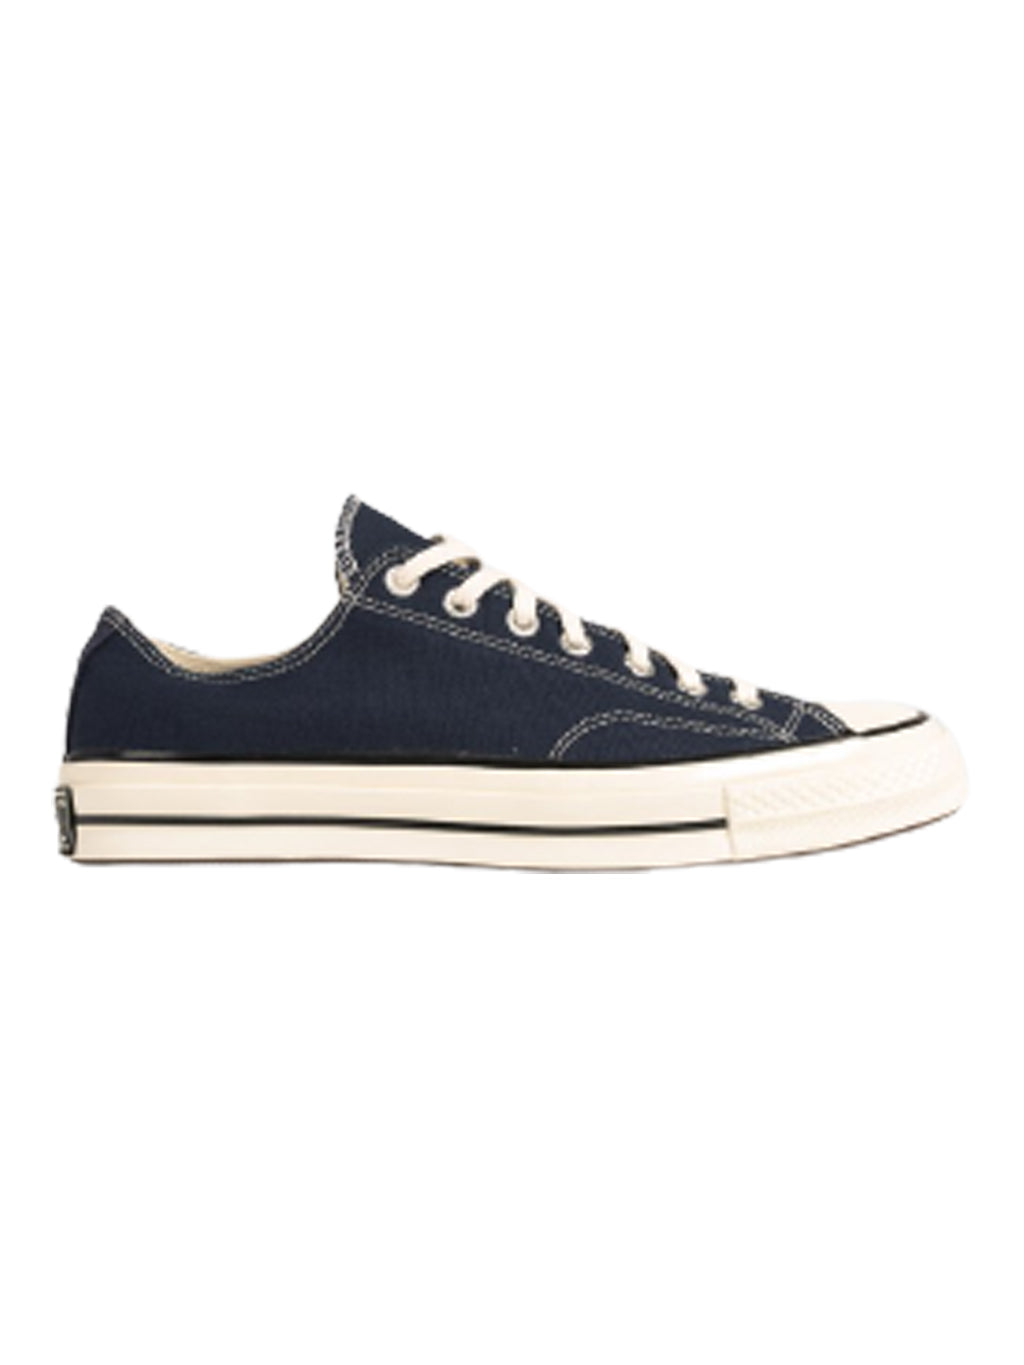 Black Navy Chuck 70 Ox Sneakers